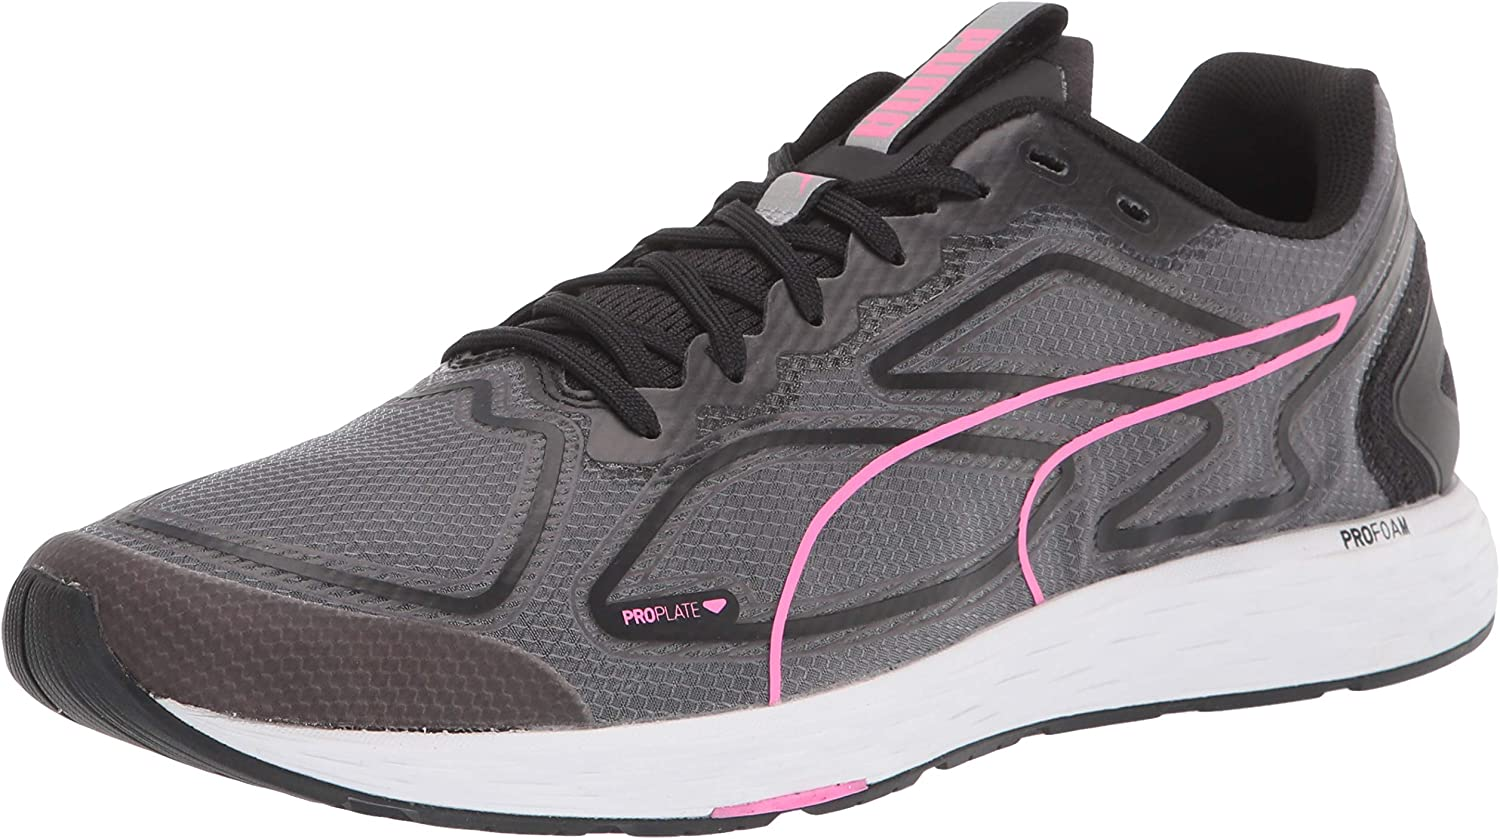 PUMA New products world's highest quality 40% OFF Cheap Sale popular Women's Speed Running Shoe